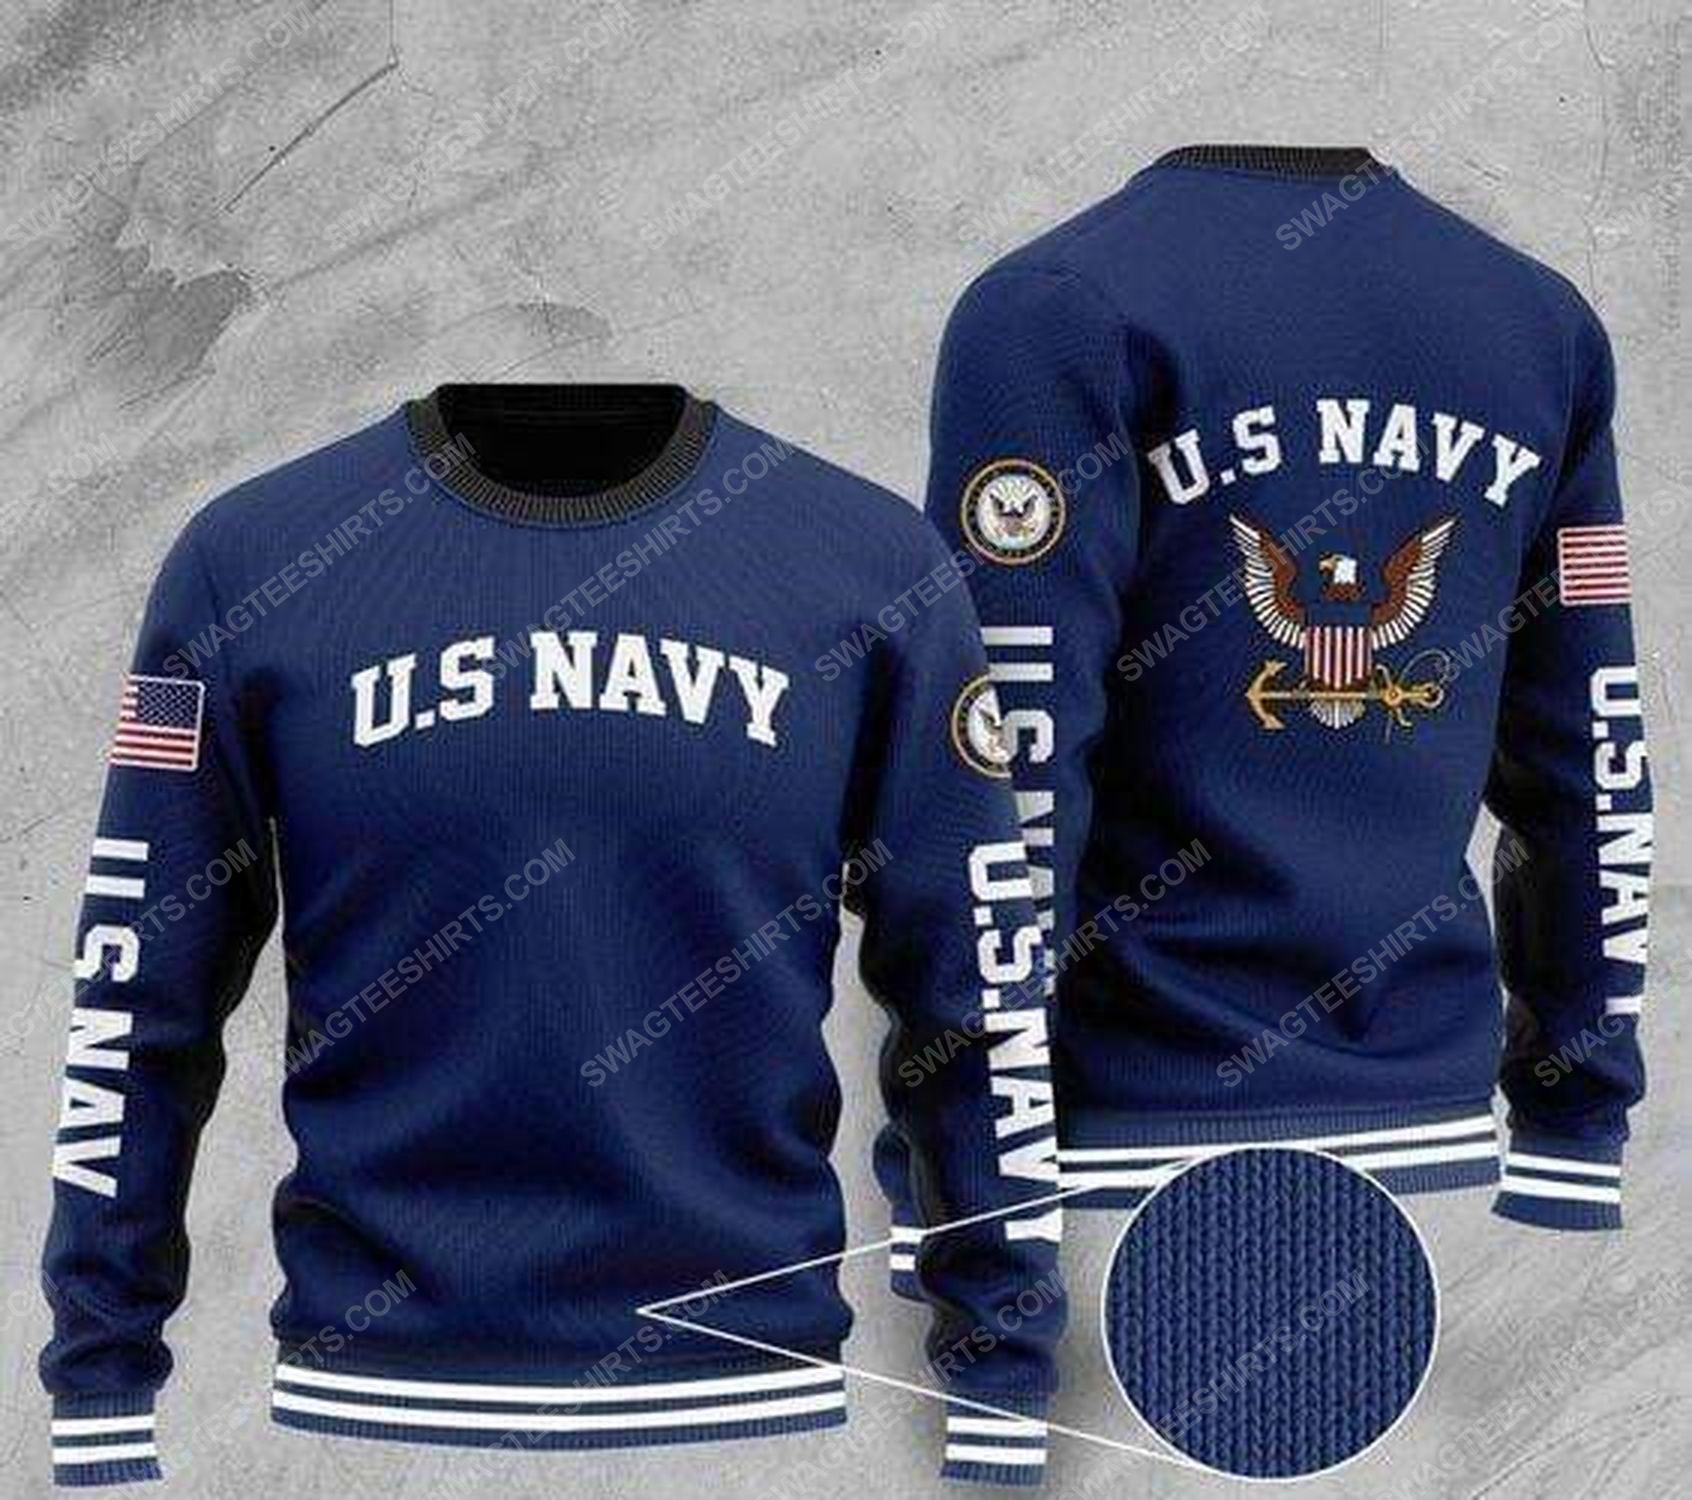 United states navy all over print ugly christmas sweater 1 - Copy (2)